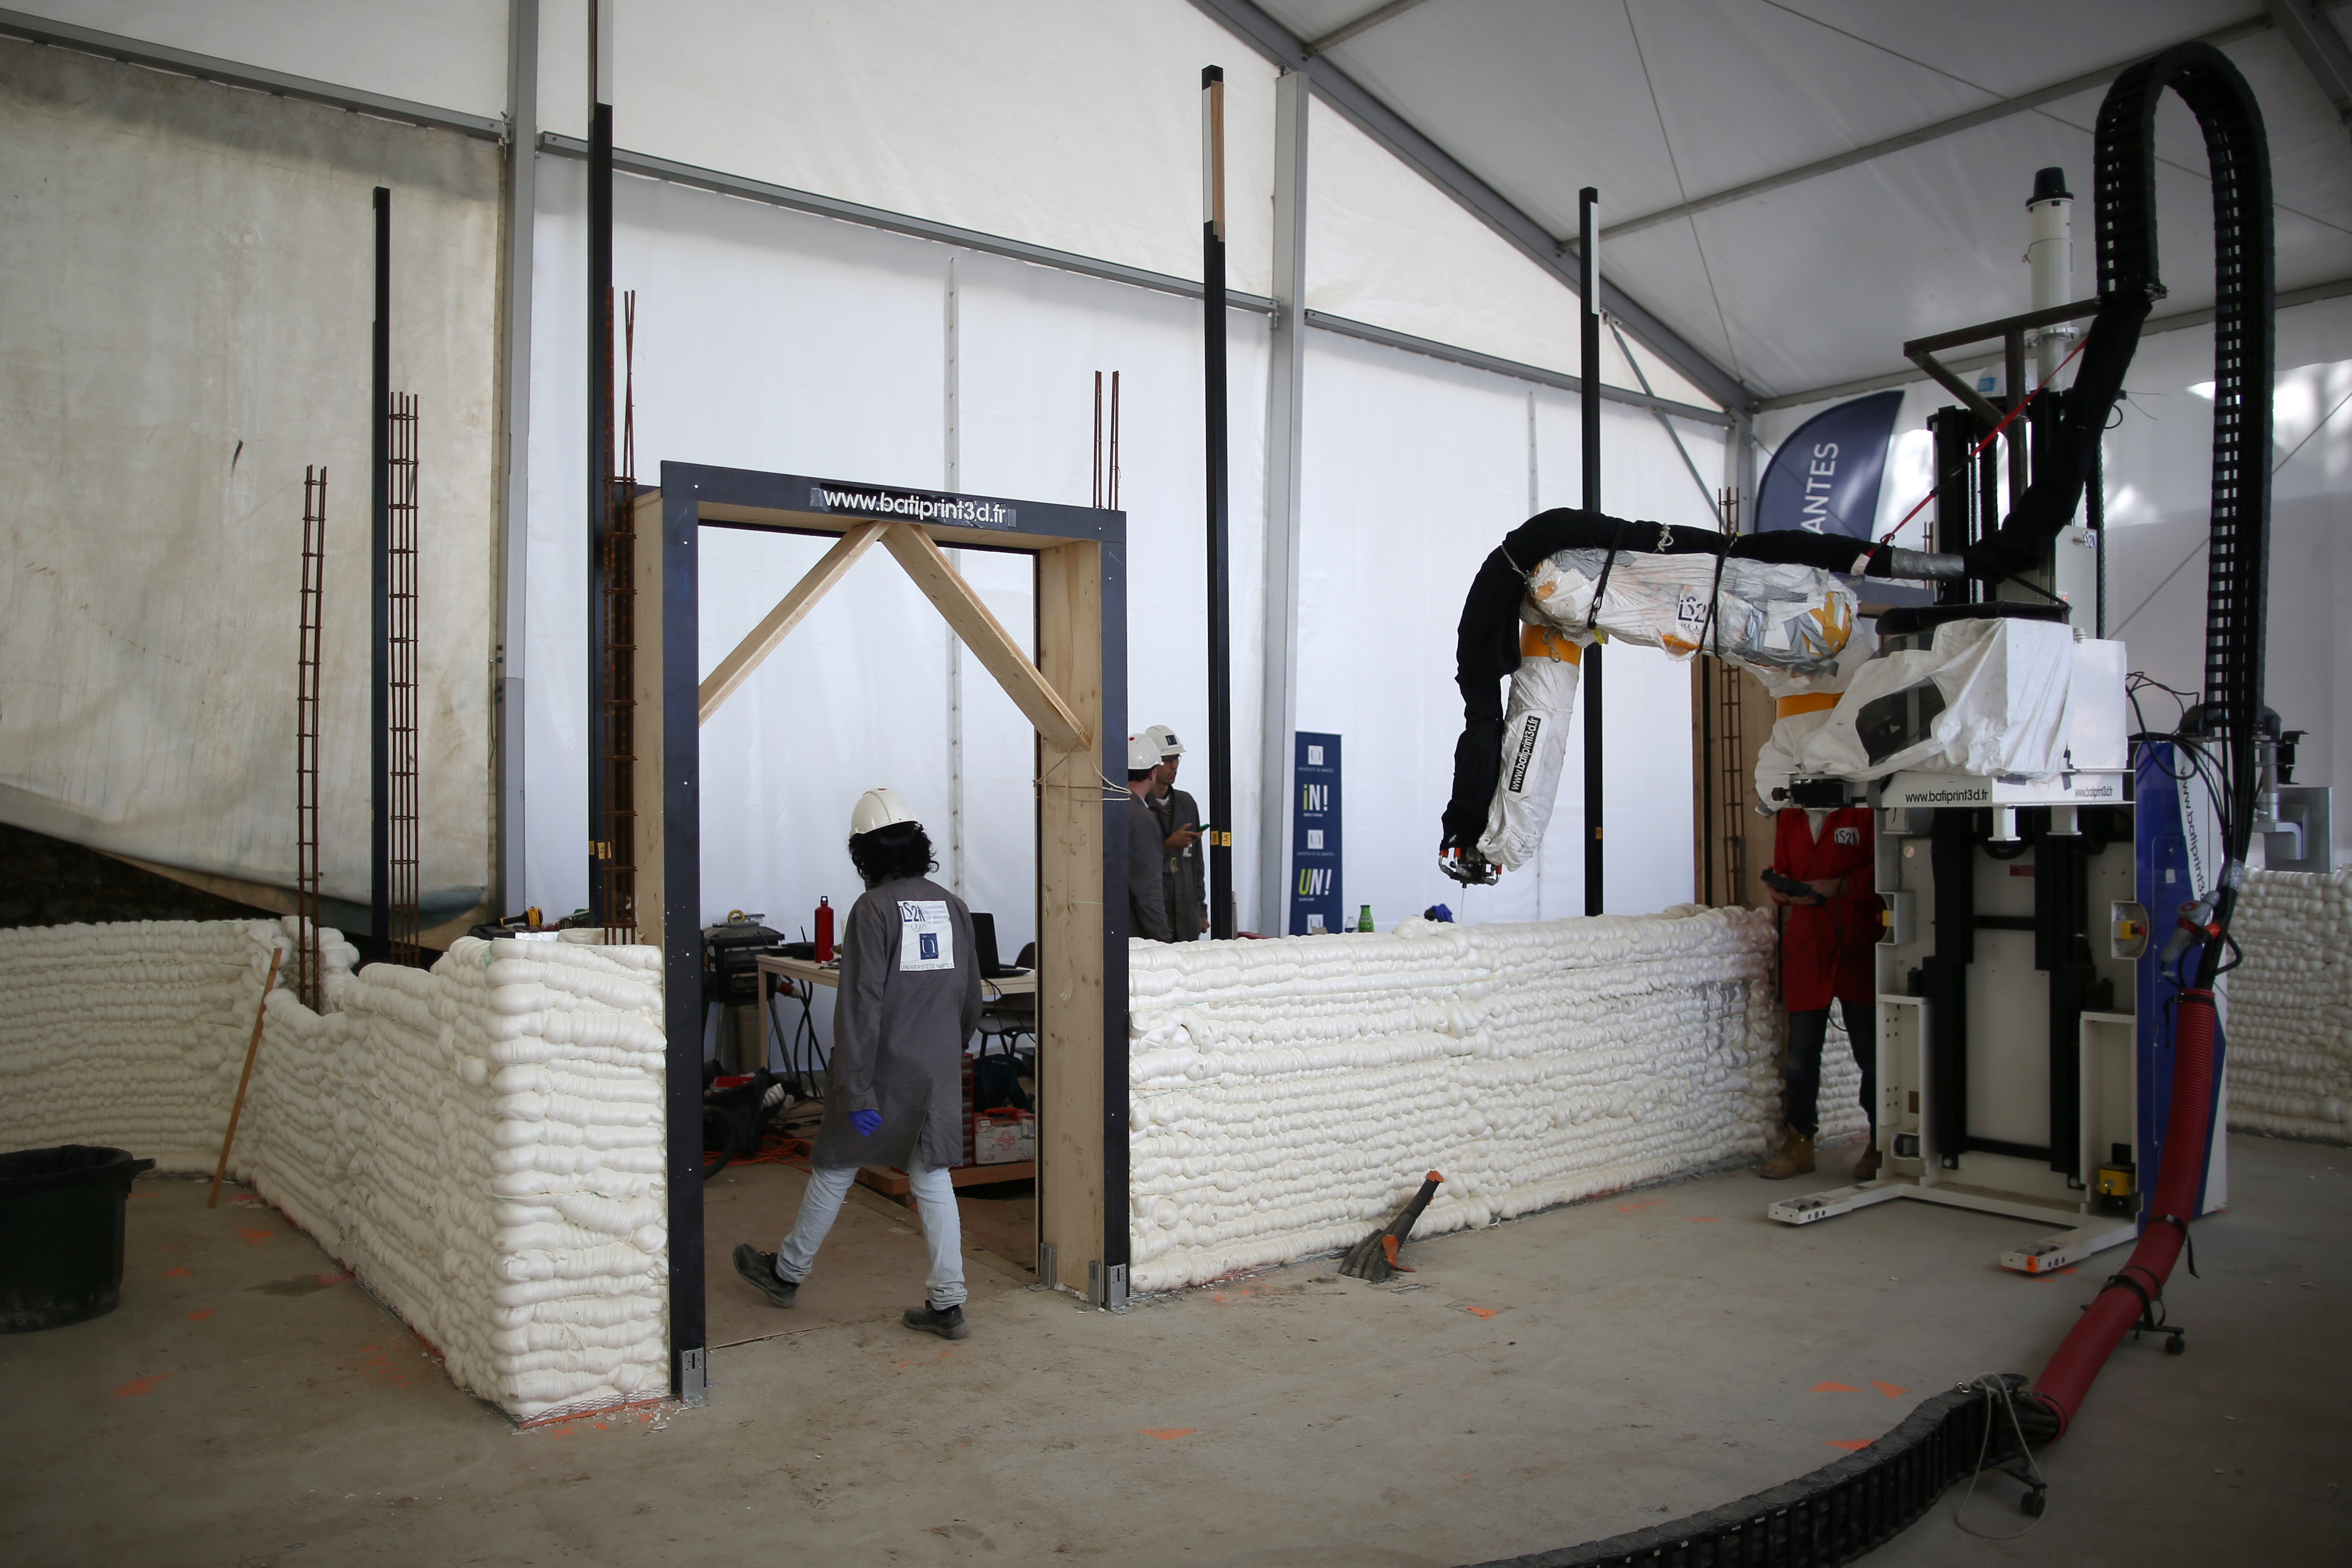 An employee works to build a 3D printed social housing building called